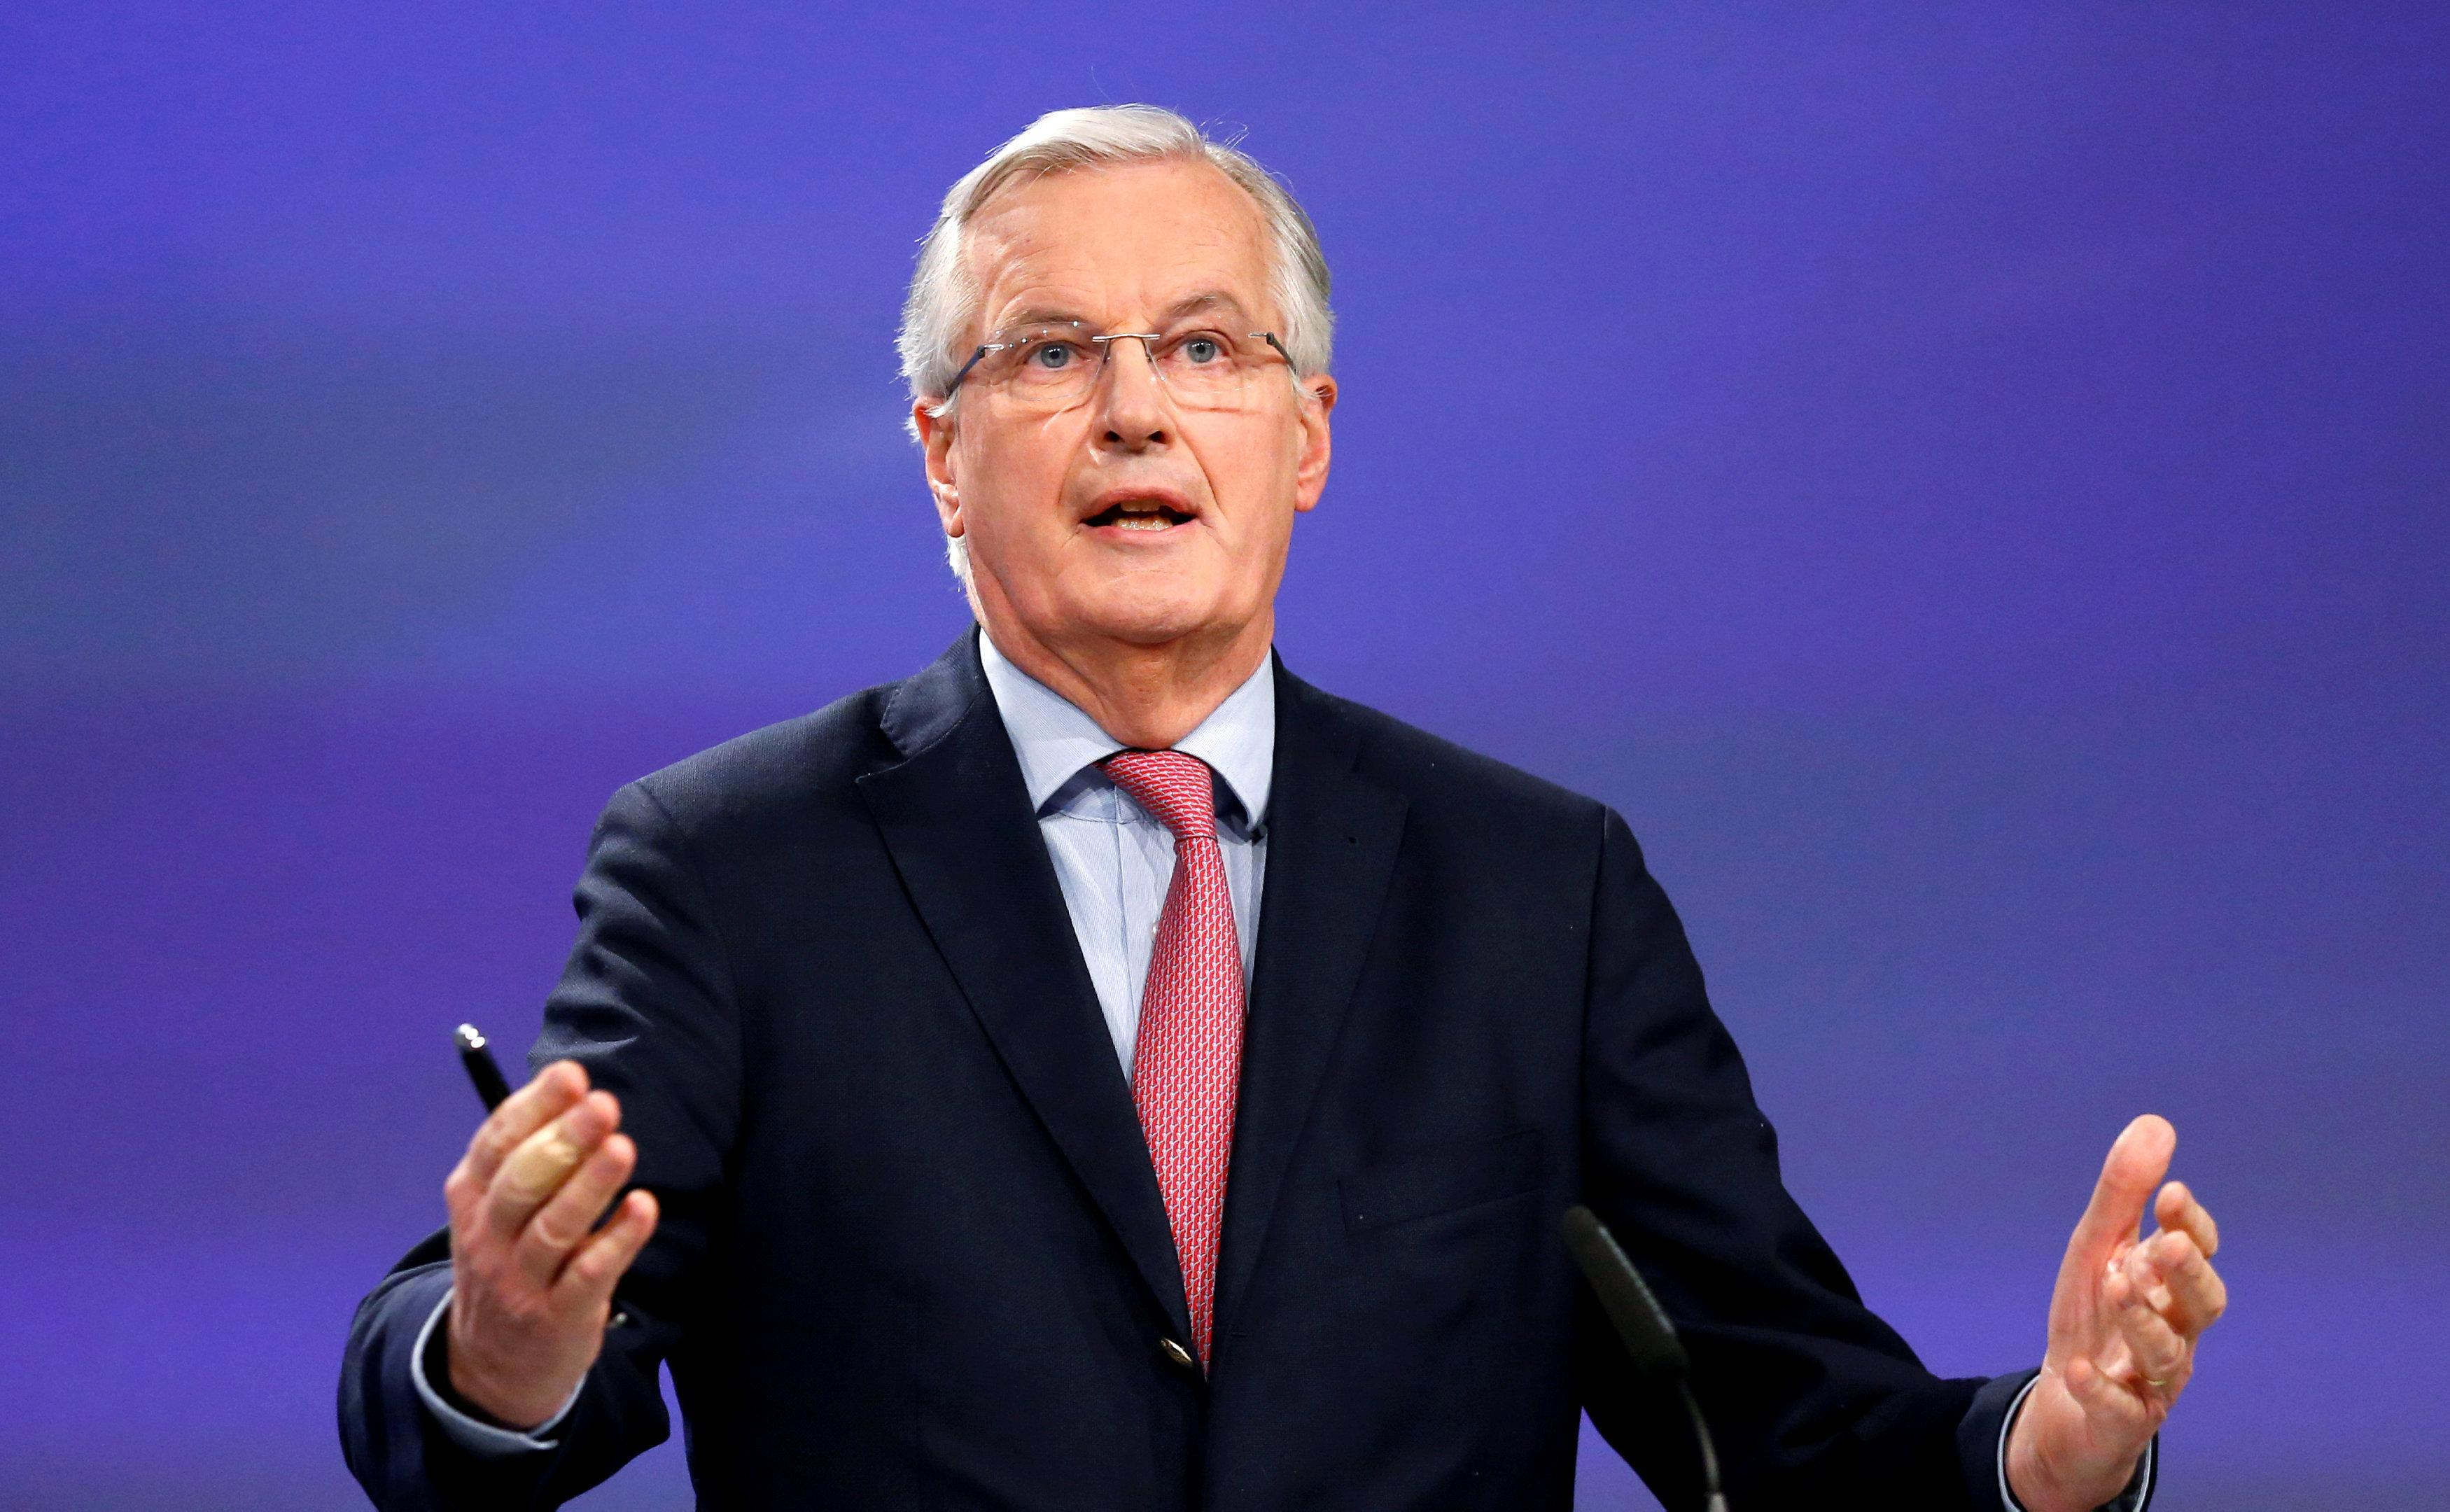 Brussels should not 'humiliate' Britain in the Brexit talks or the whole EU could collapse, key Macron ally warns Michel Barnier